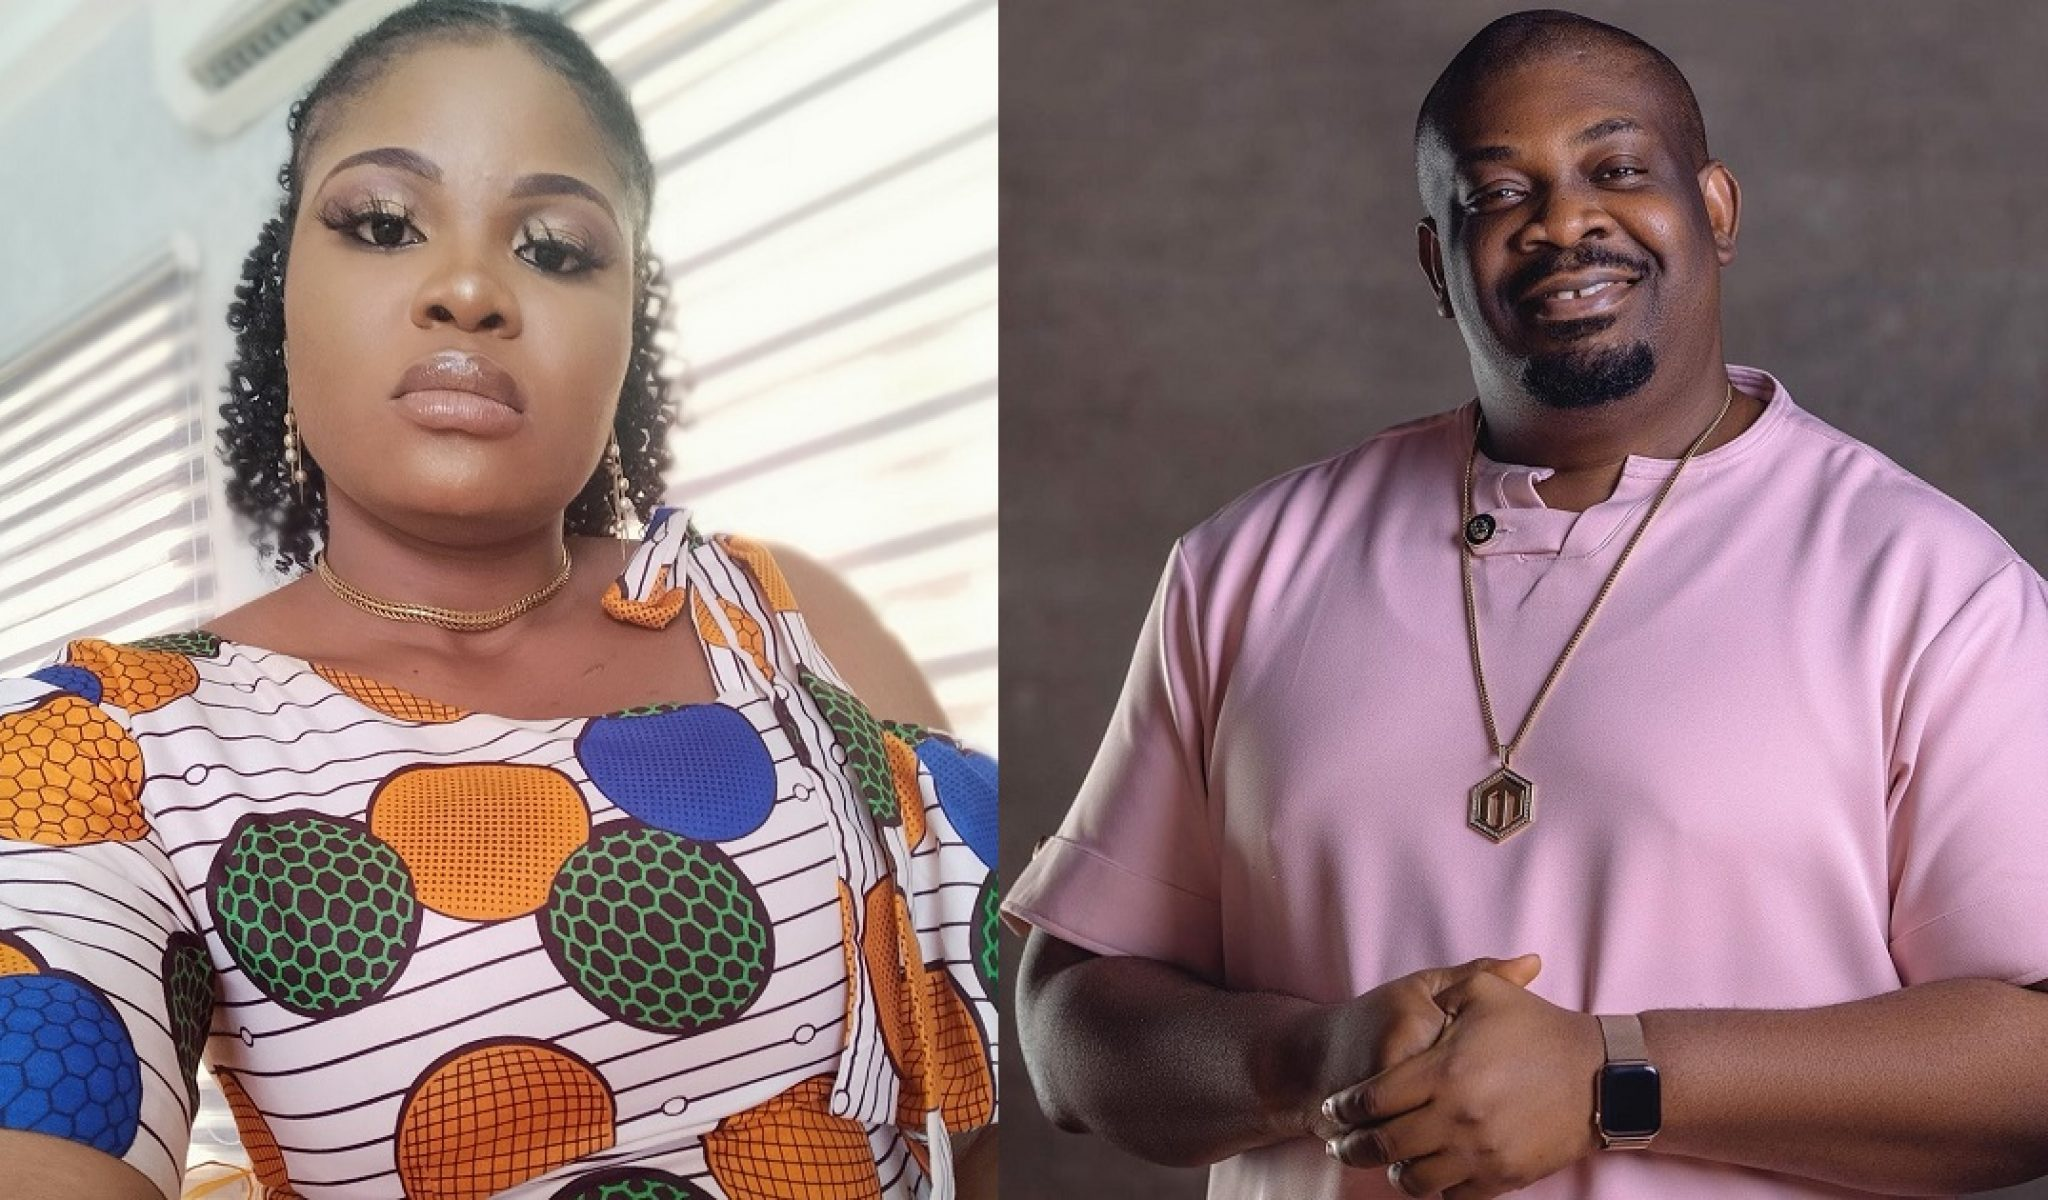 Nigerian Lady Claims Don Jazzy Is Her Destined Husband, She Is Preserving Her Virginity For Him